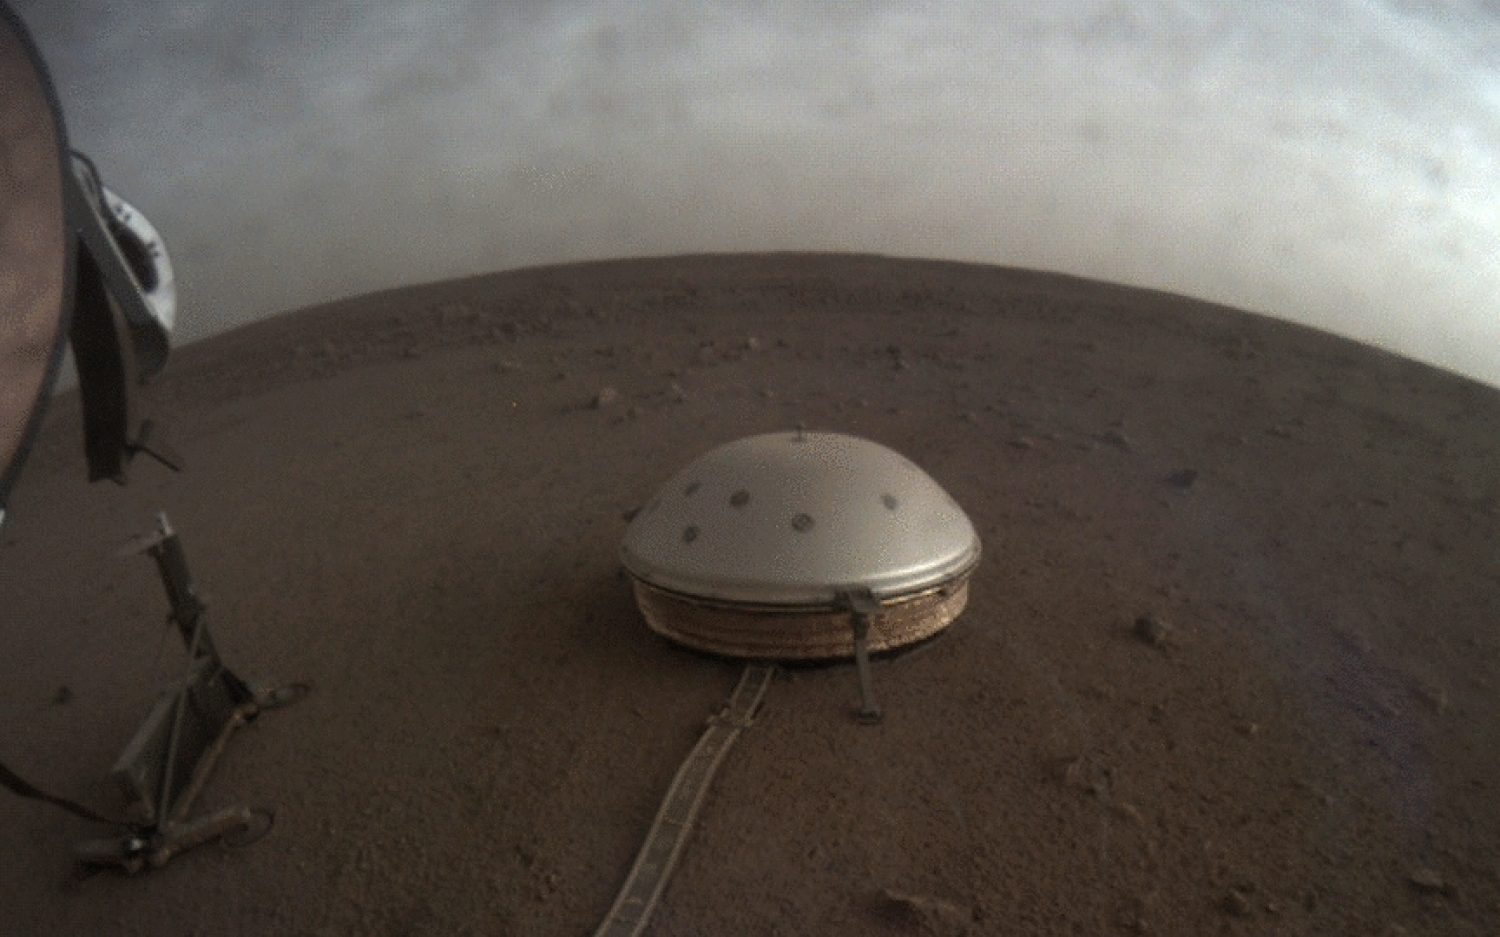 Insight into the inside of Mars